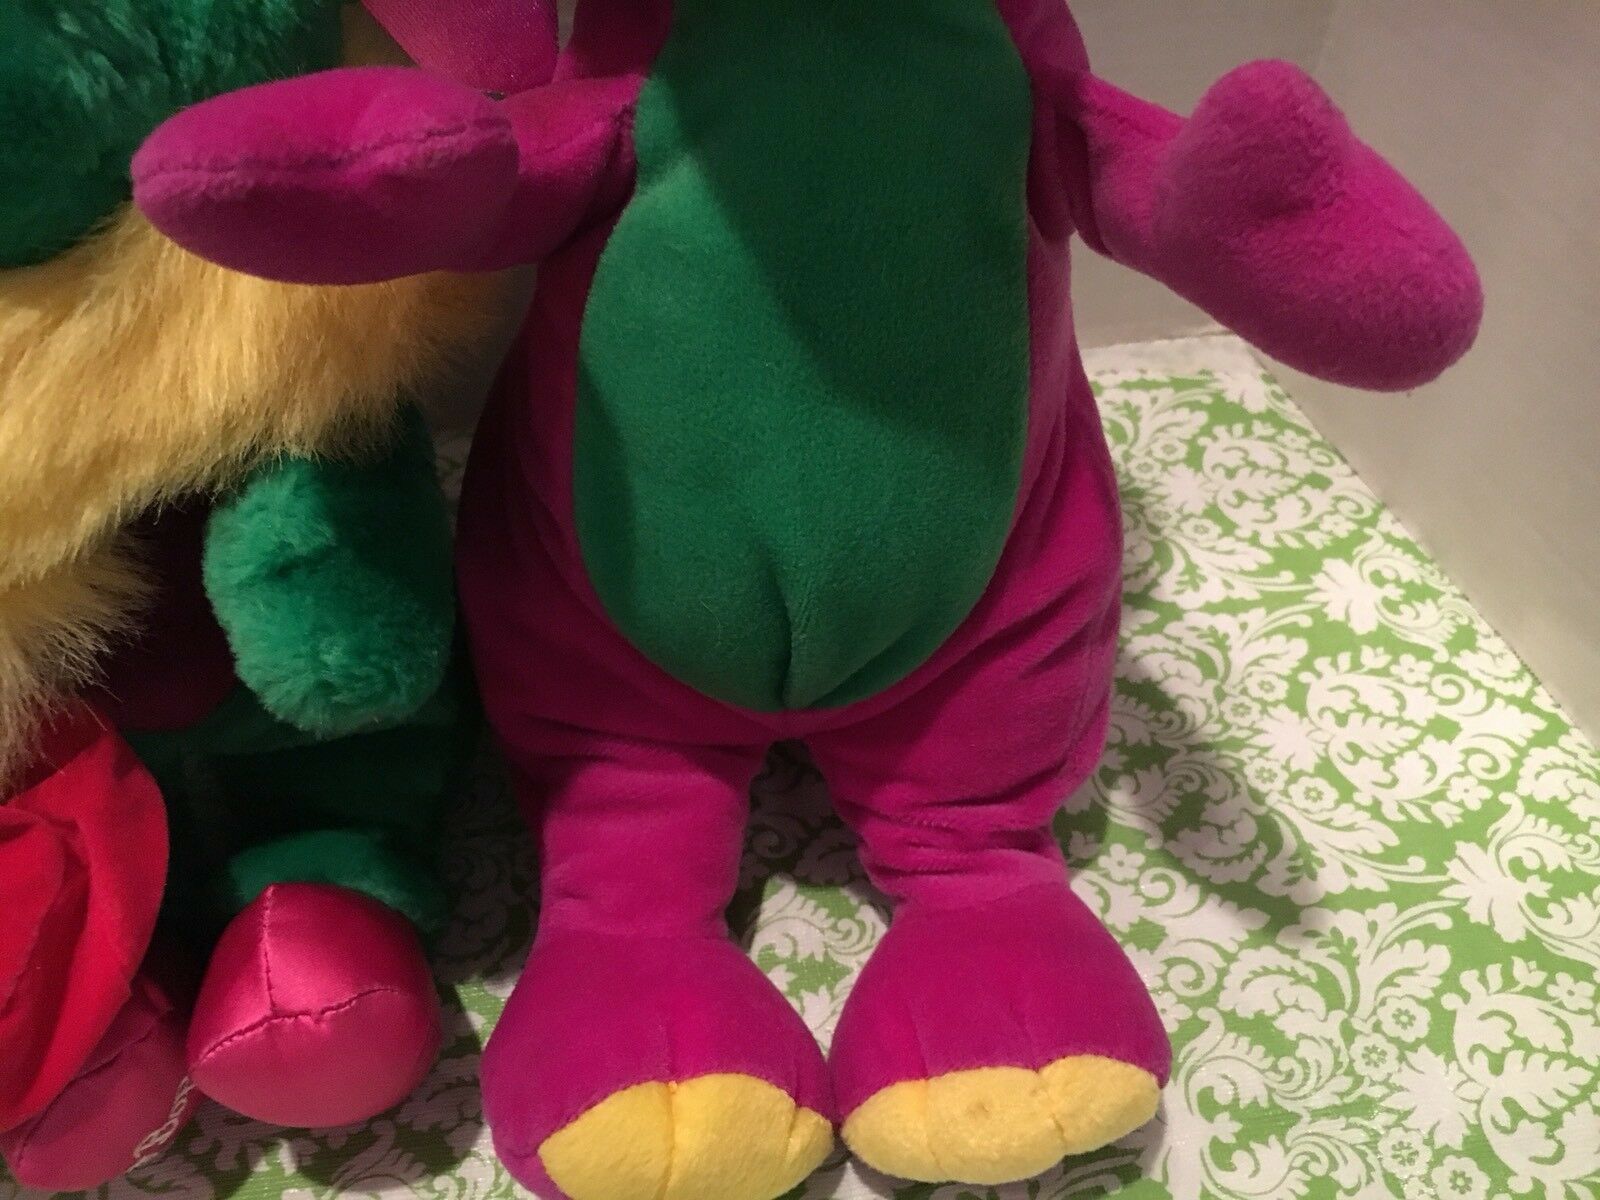 Baby Bop Bop Bop In Crown And Earrings And Barney The Dinosaur Stuffed Plush Set 36b744